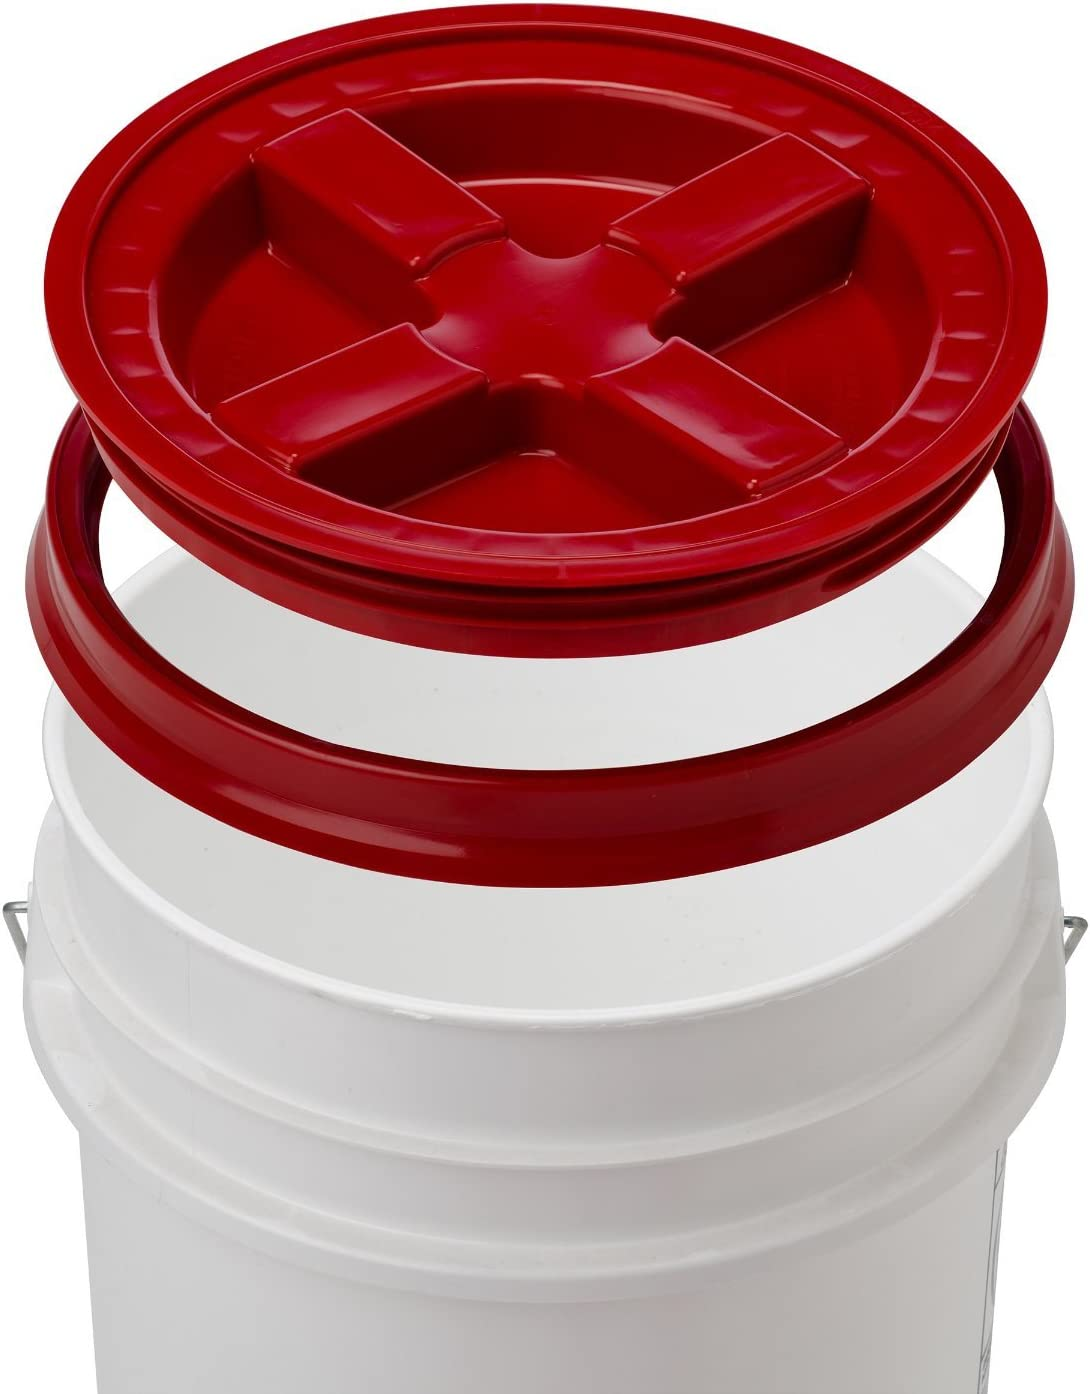 5 Gallon White Bucket & Gamma Seal Lid - Food Grade Plastic Pail & Gamma2 Screw Seal Tight Lid (Red)